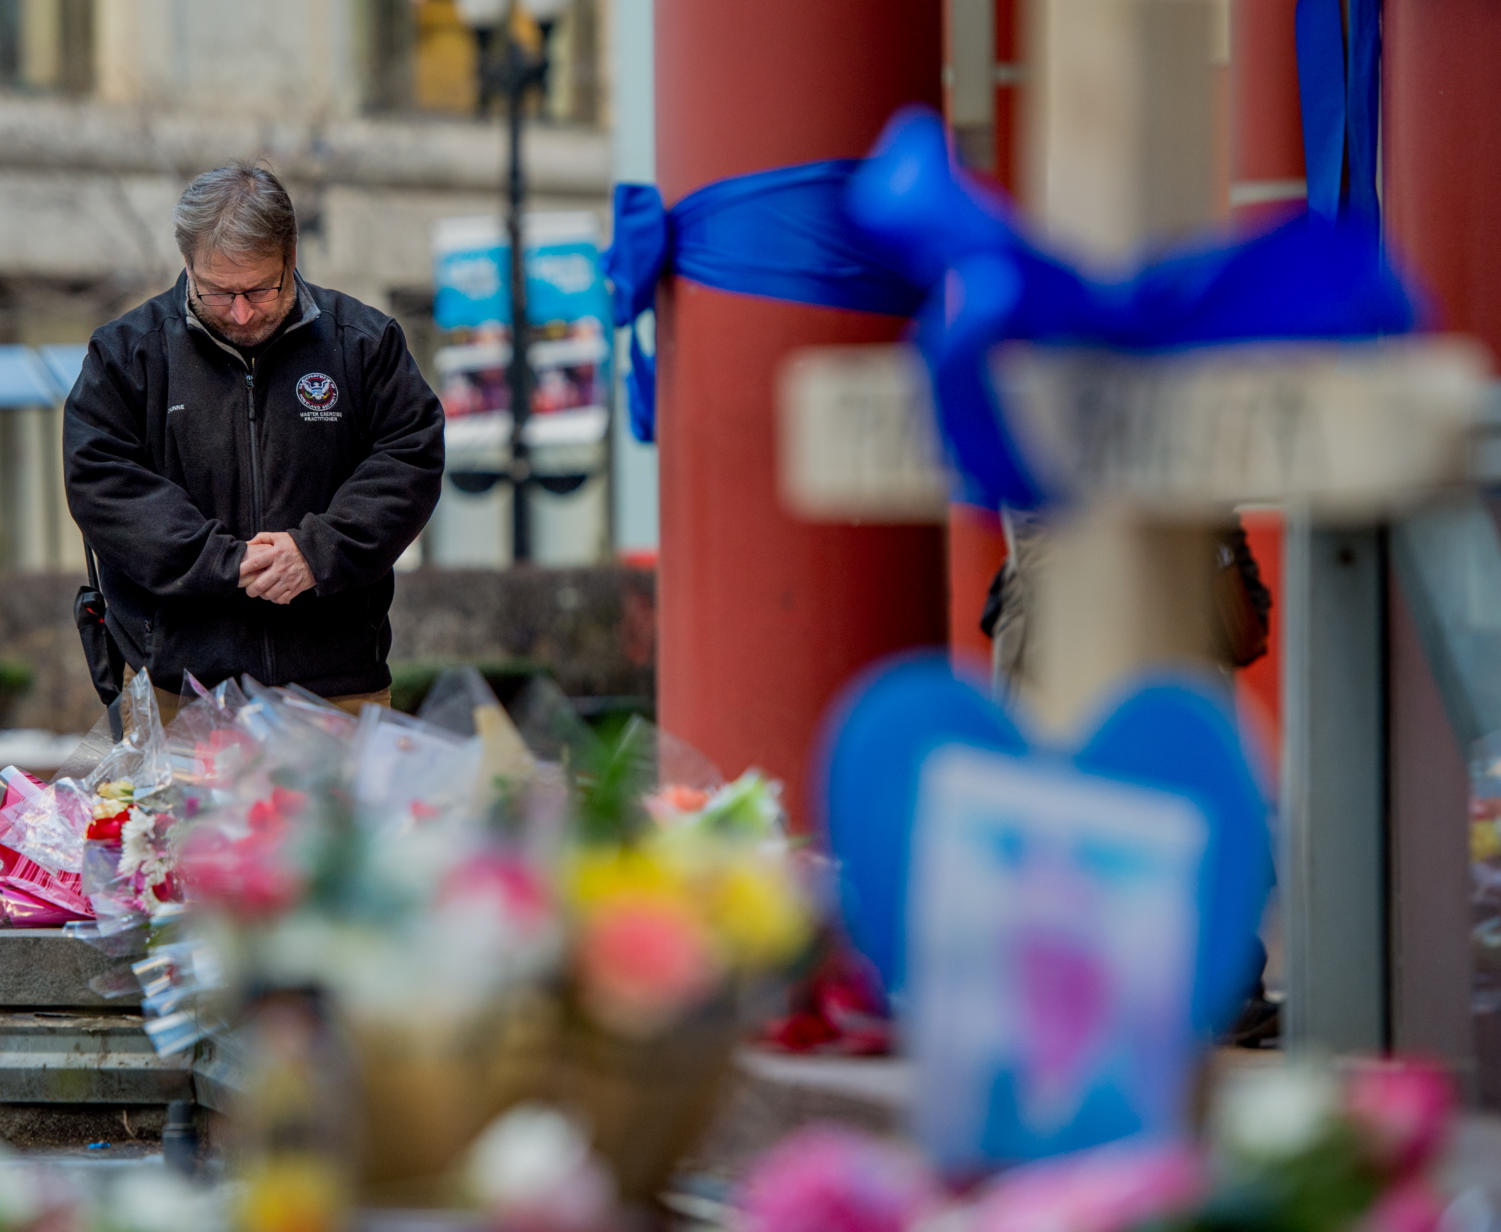 Robert Dunne, an Office of Homeland Security agent from Chicago, pays his respects at the site of Chicago police commander Paul Bauer's death, Friday, Feb. 16, 2018, outside of Thompson Center in Chicago, Illinois. Bauer was shot to death after chasing a man fleeing from tactical officers, according to the Chicago Tribune.